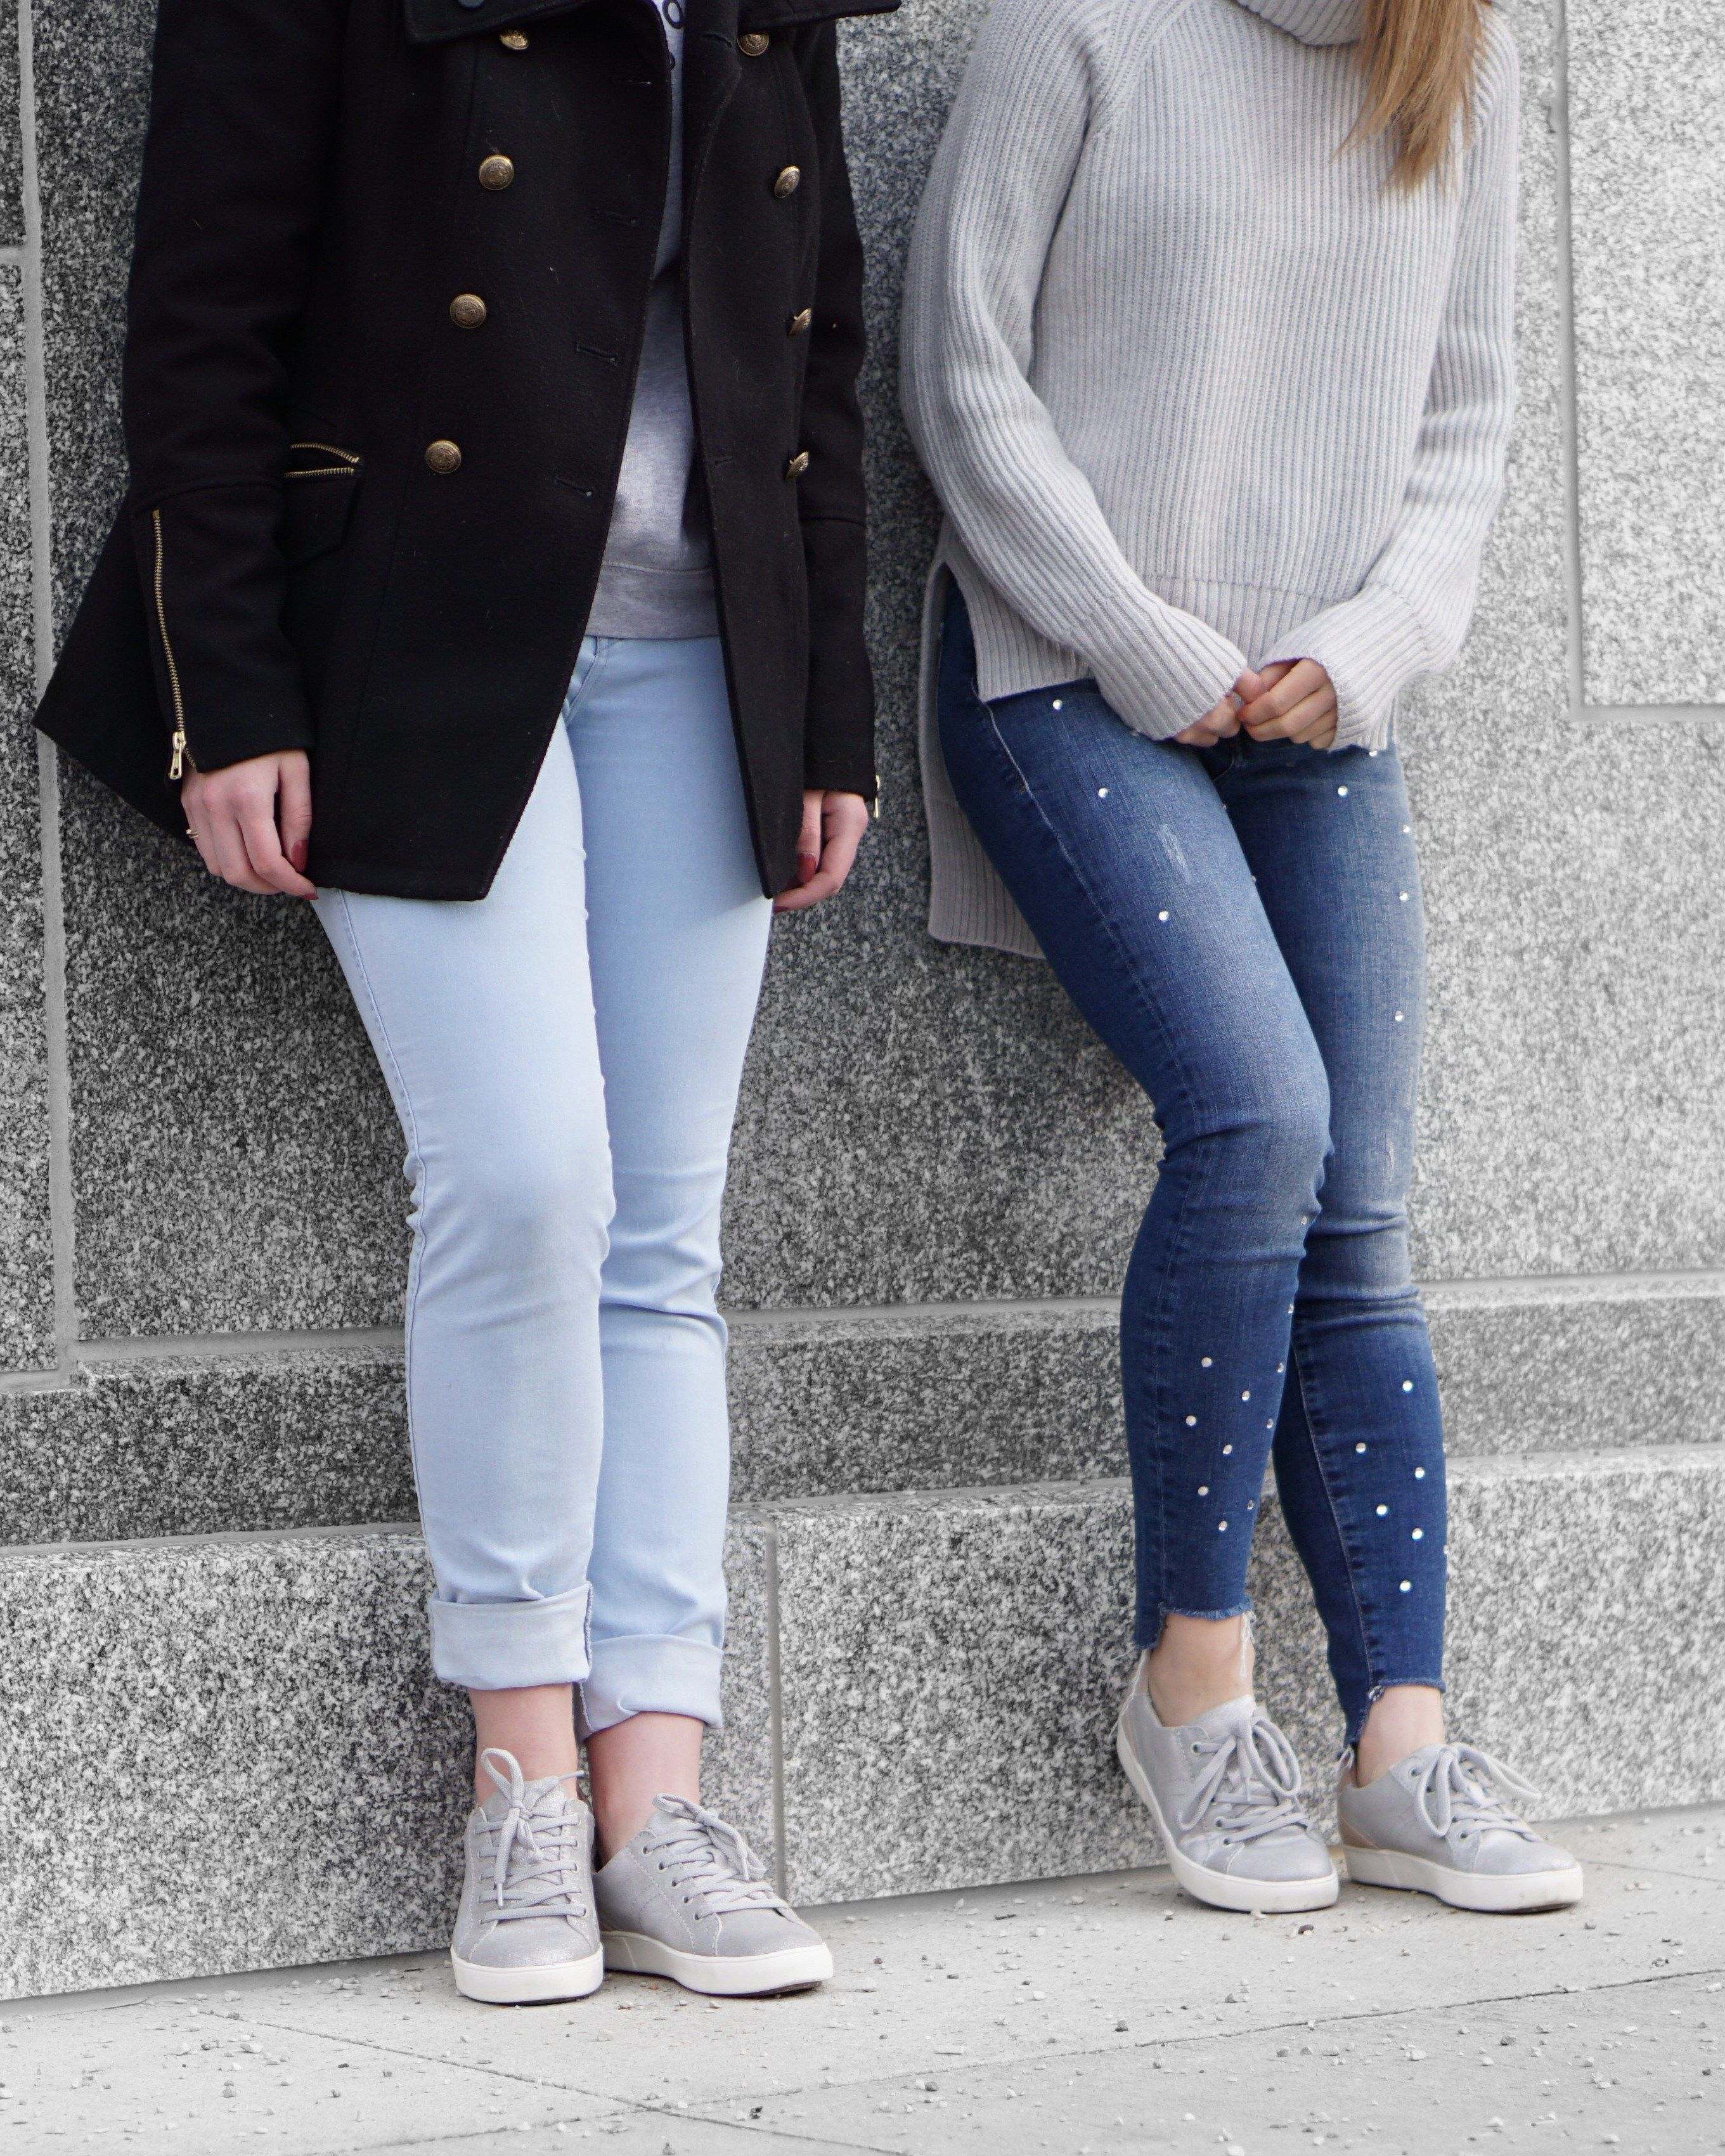 A Little Detail - Metallic Sneakers & Naturalizer BFF Sale!!! // #outfit #fashion #springfashion #silversneakers #metallicsneakers #girls #cute #bestfriends